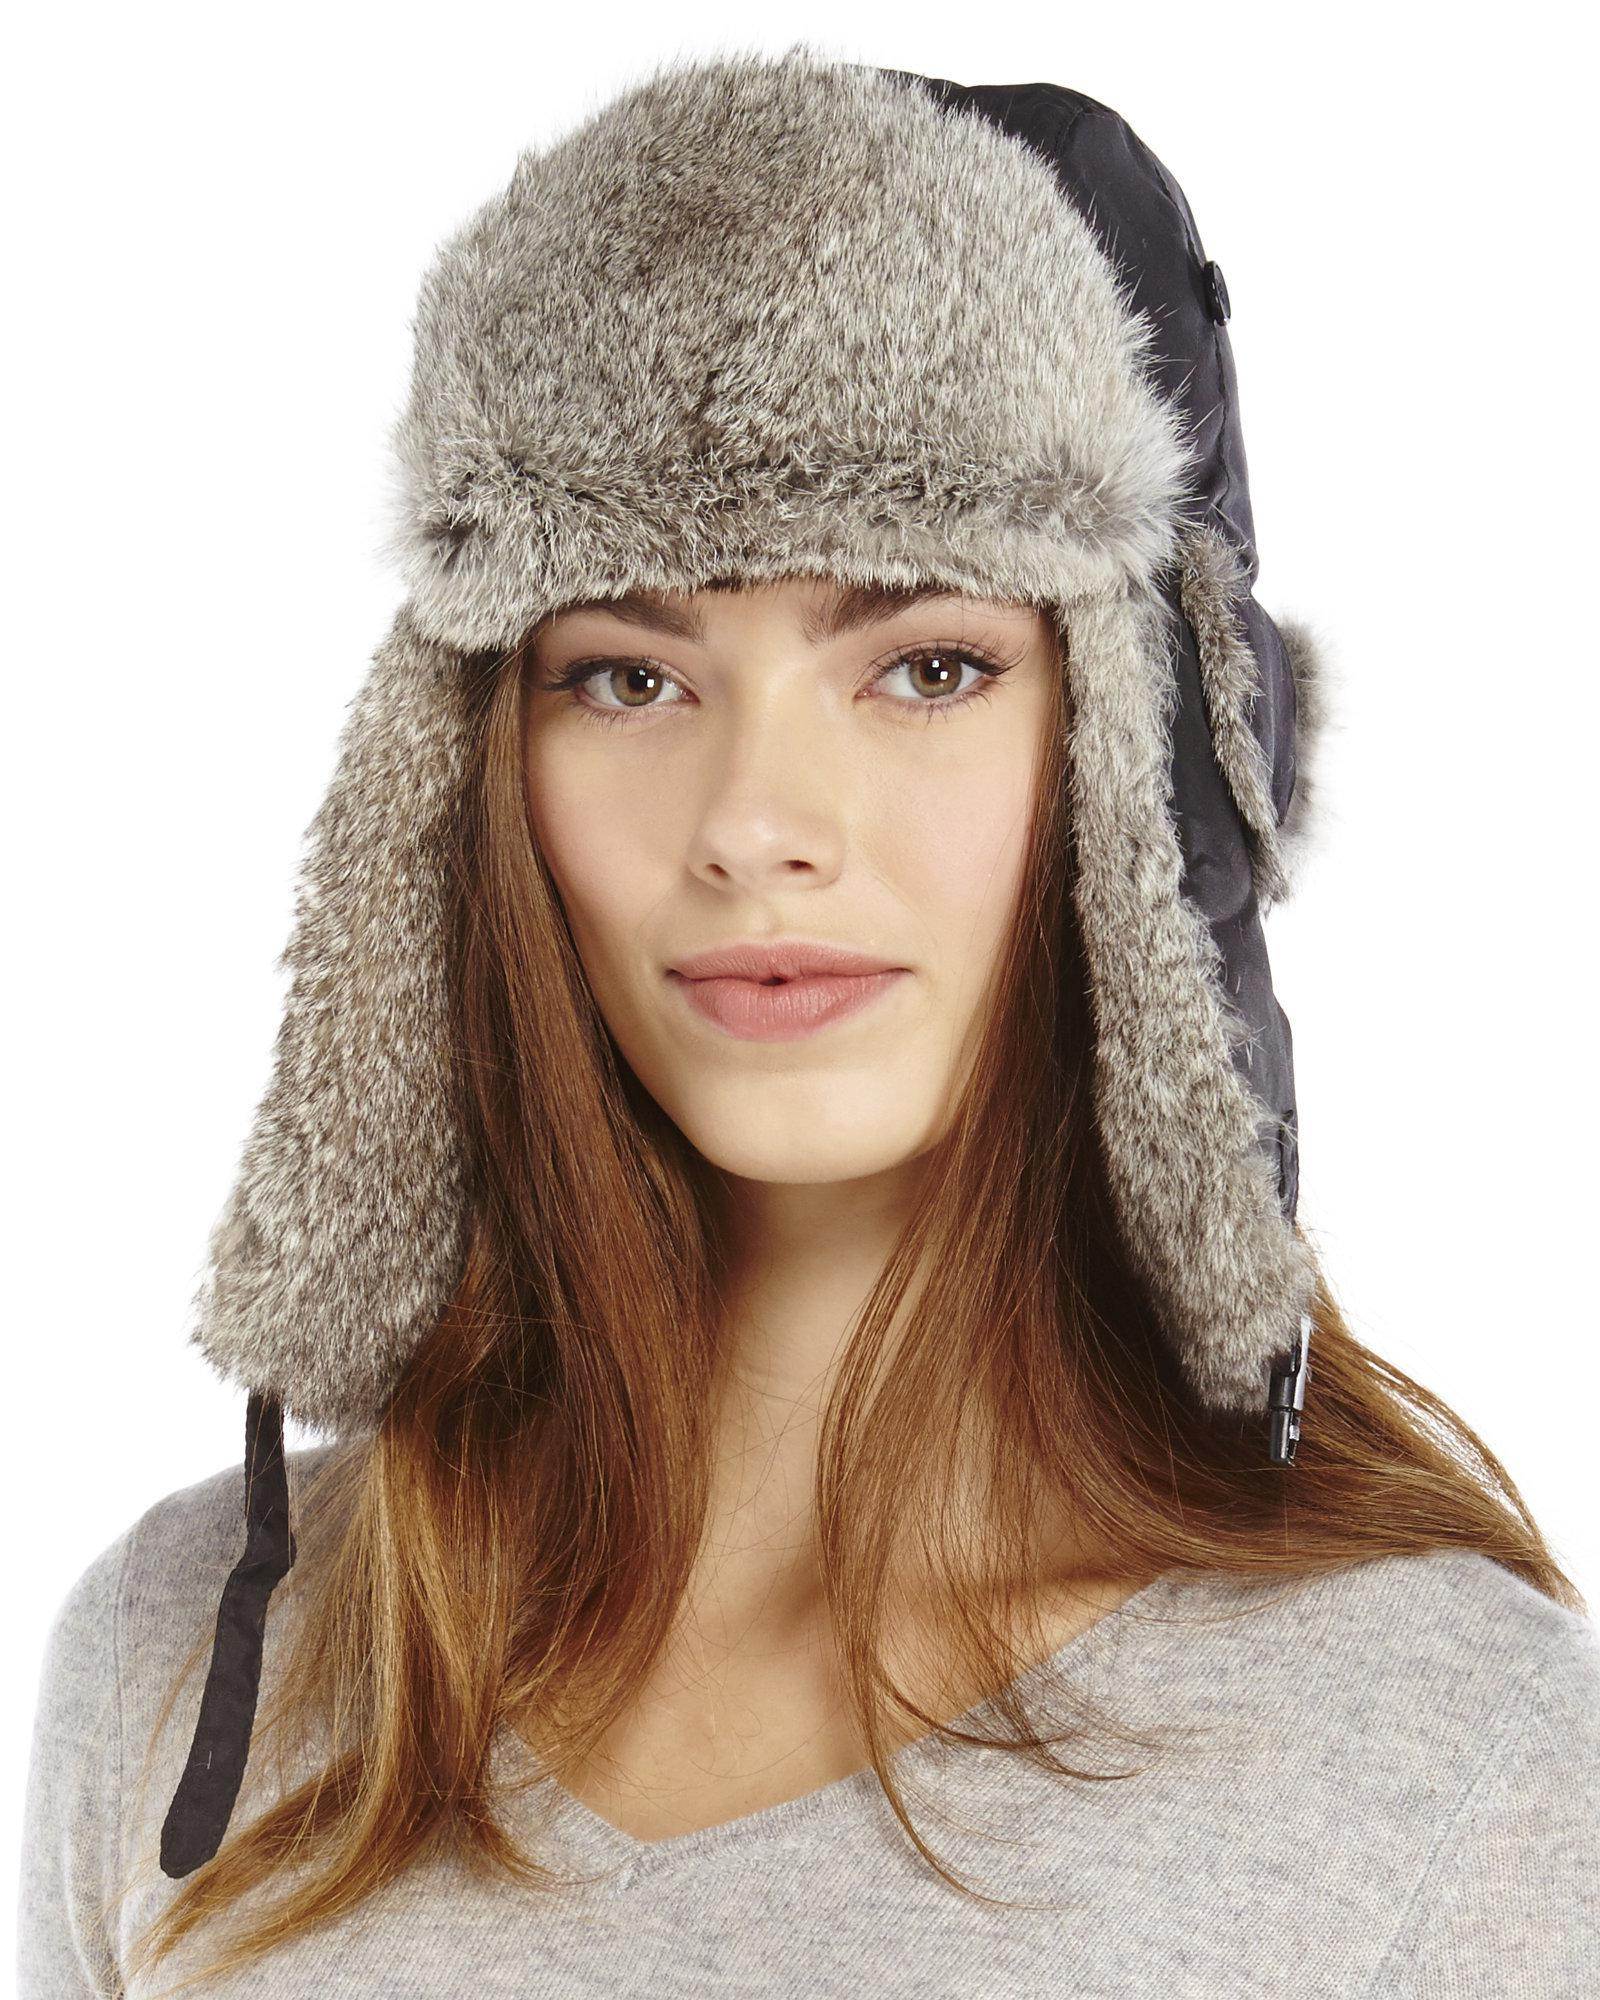 Lyst - Crown Cap Real Rabbit Fur Trapper Hat in Gray 258cd0d9384a